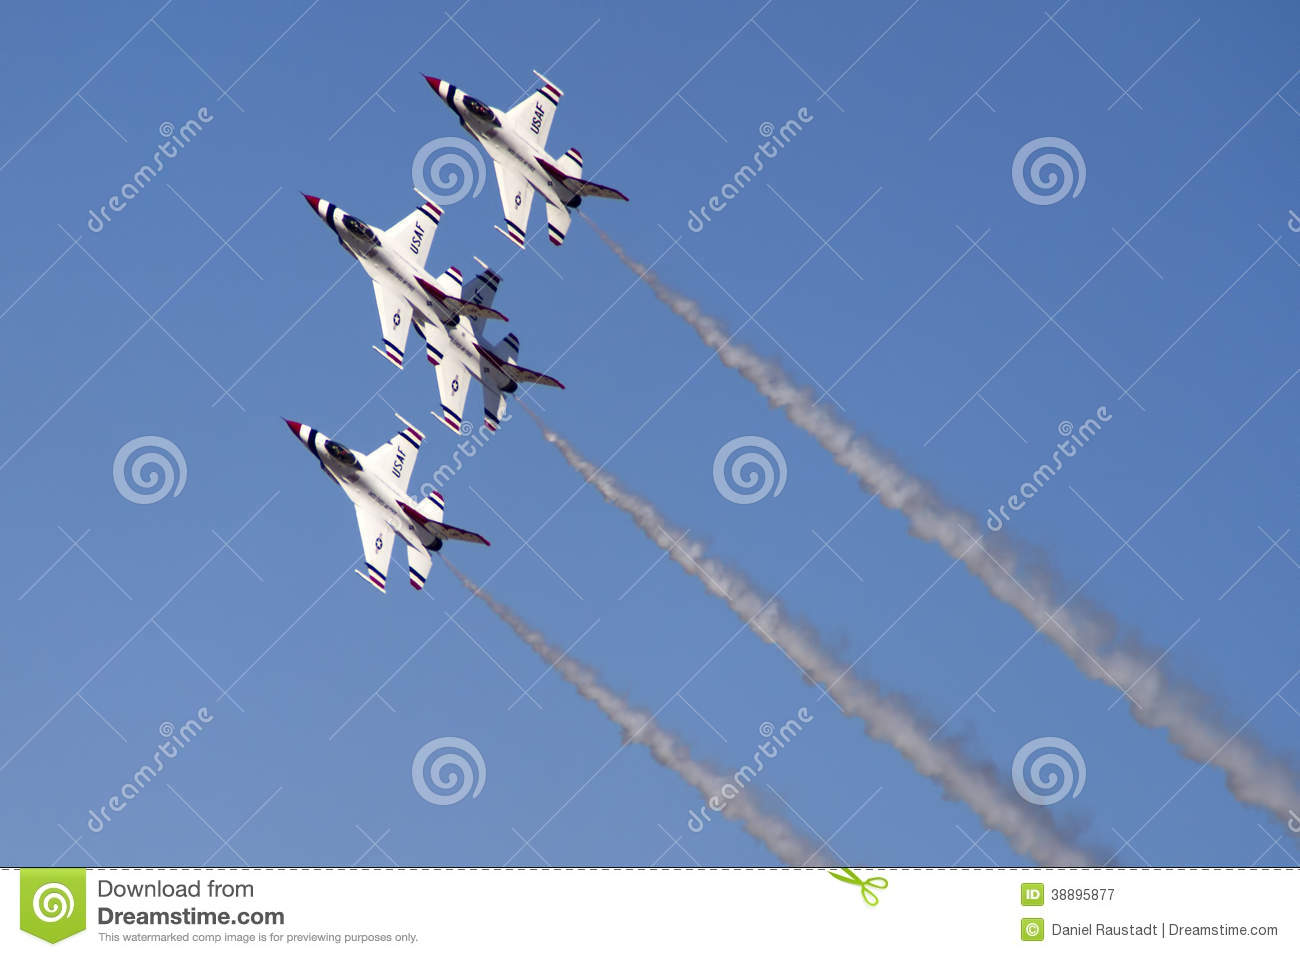 The United States Air Force Thunderbirds Air Demonstration Squadron